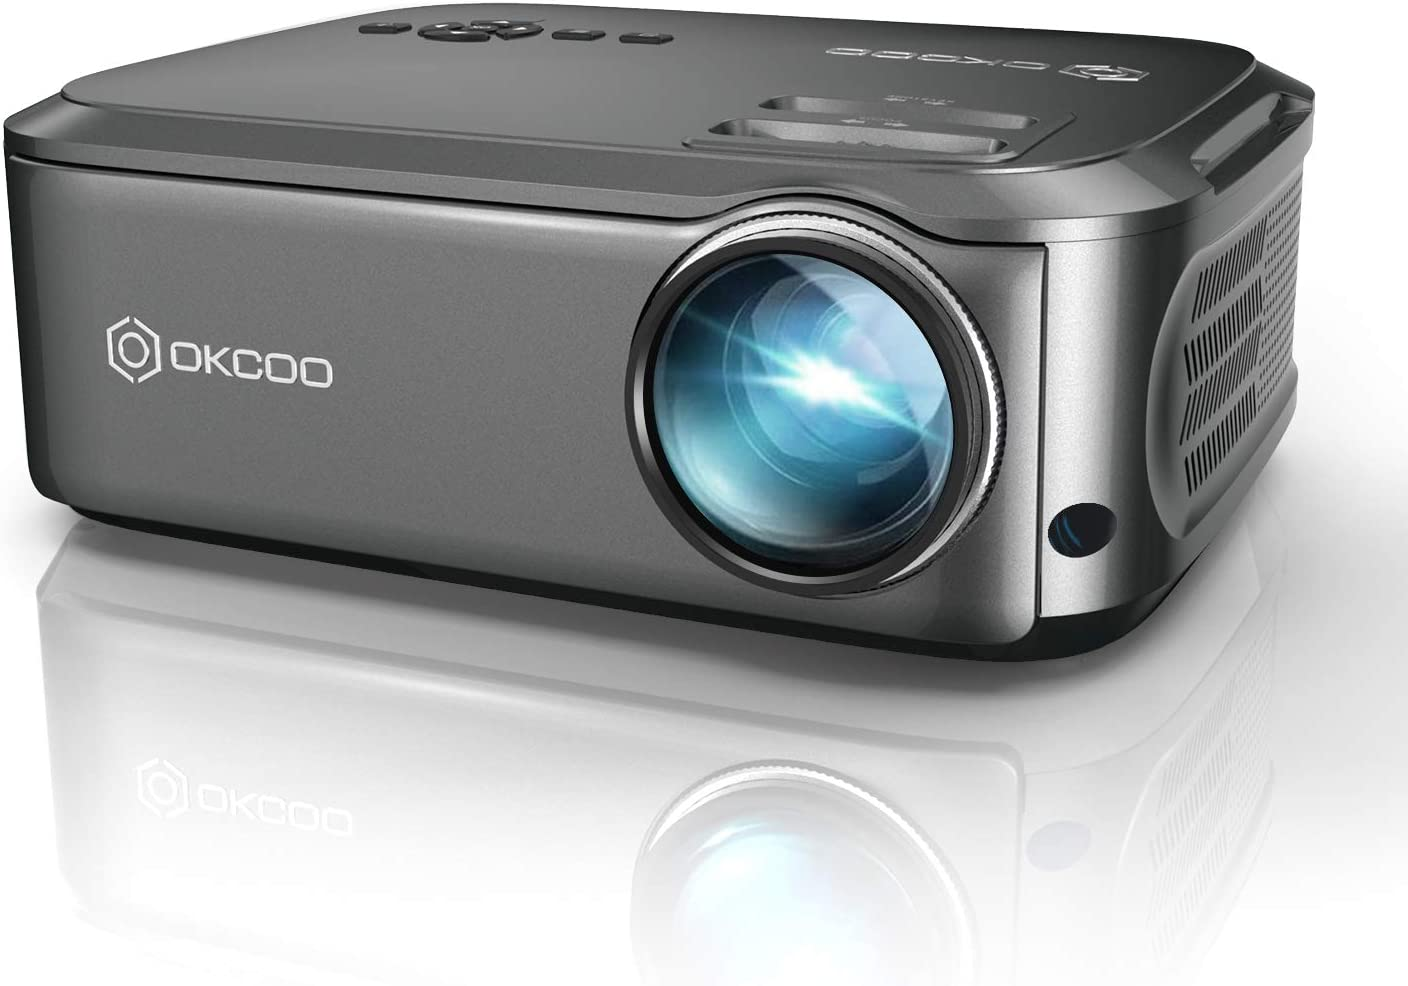 Projector, OKCOO Native 1080P Video Projector Full HD Outdoor Movie Projectors for Home Theater, Upgrade Business PowerPoint Presentations Projector for Laptop, iOS/android, Fire TV Stick, PS4